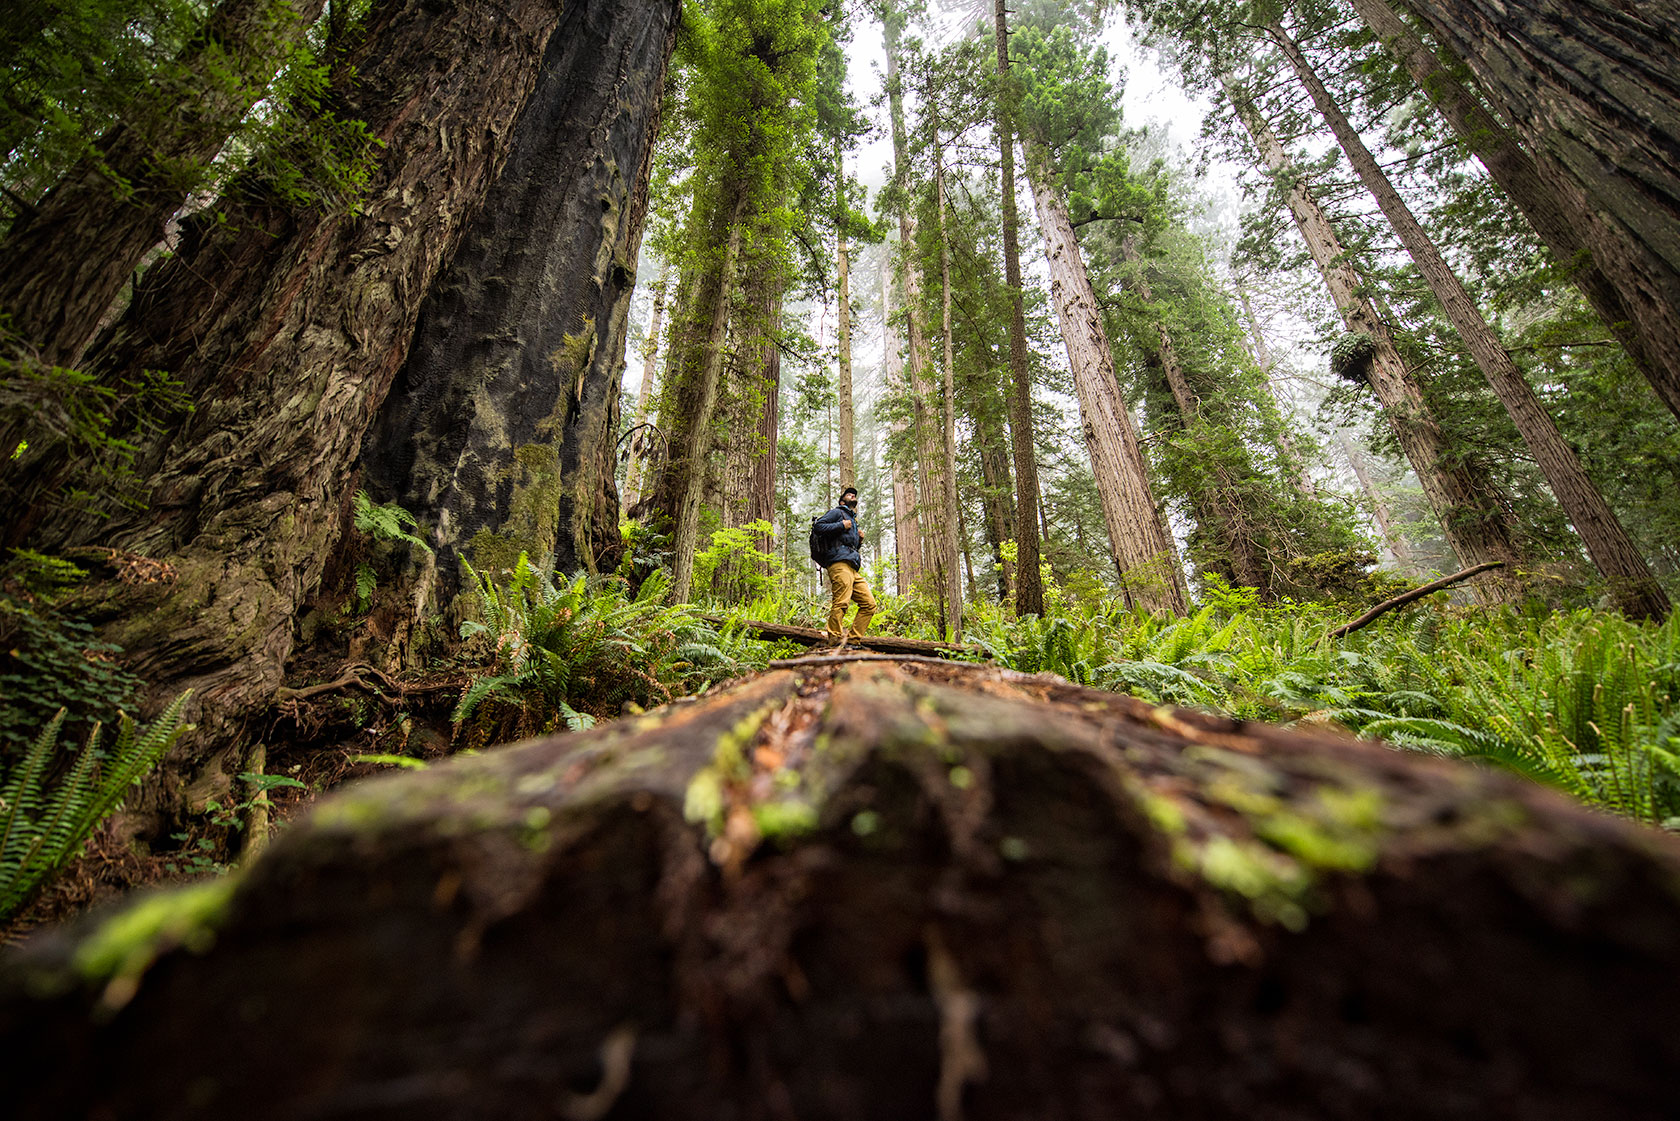 austin-trigg-redwood-national-state-park-fog-Log-Standing-explore-forest-tall-tree.jpg